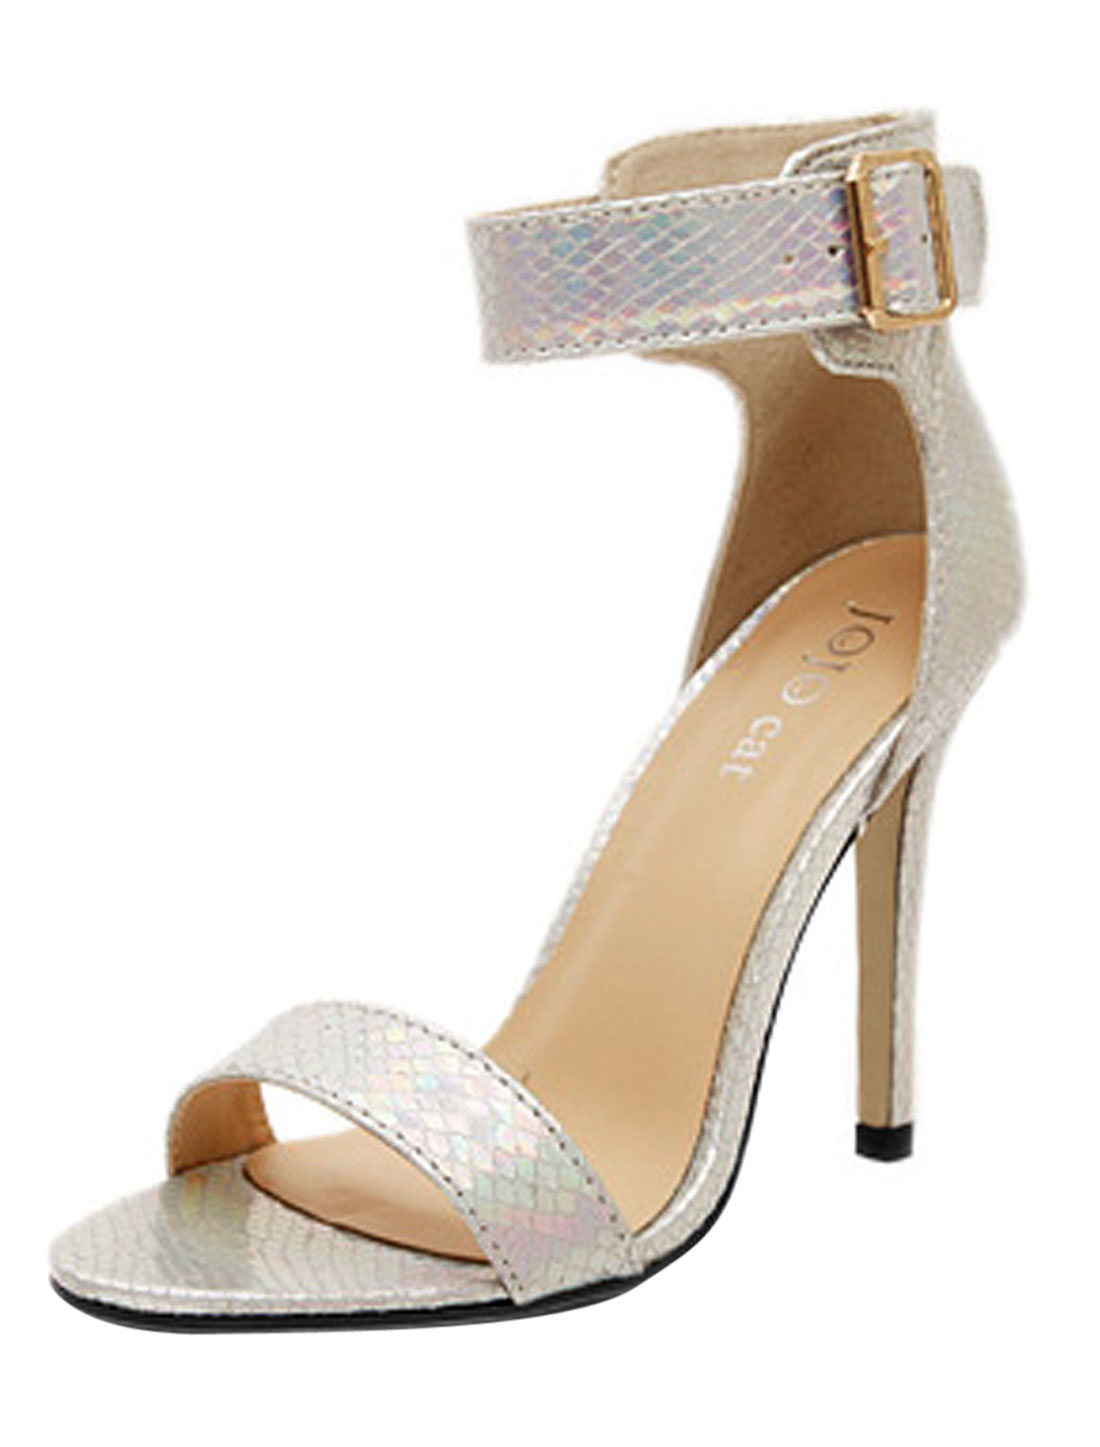 Women Metallic Ankle Strap Snakeskin-patterned Sandals Silver Tone US 7